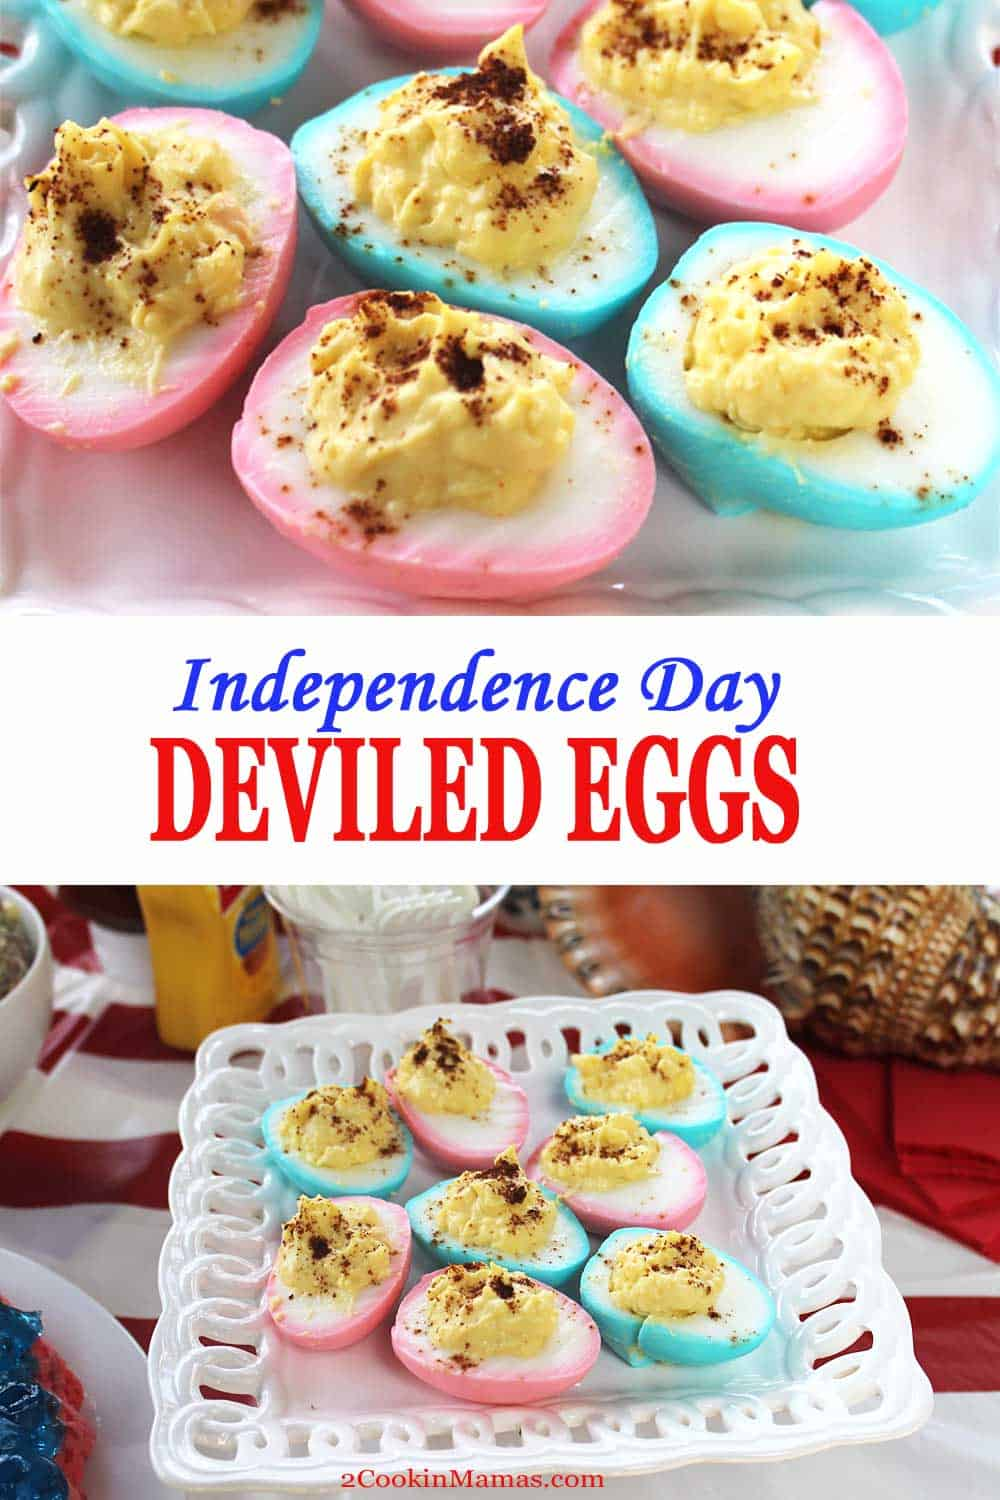 Independence Deviled Eggs | 2 Cookin Mamas The perfect 4th of July picnic side dish - Independence Day Deviled Eggs. Hard boiled eggs are colored red and blue then filled with a tangy egg mixture. #deviledeggs #july4th #sidedish #recipe #easy #coloredeggs #picnic